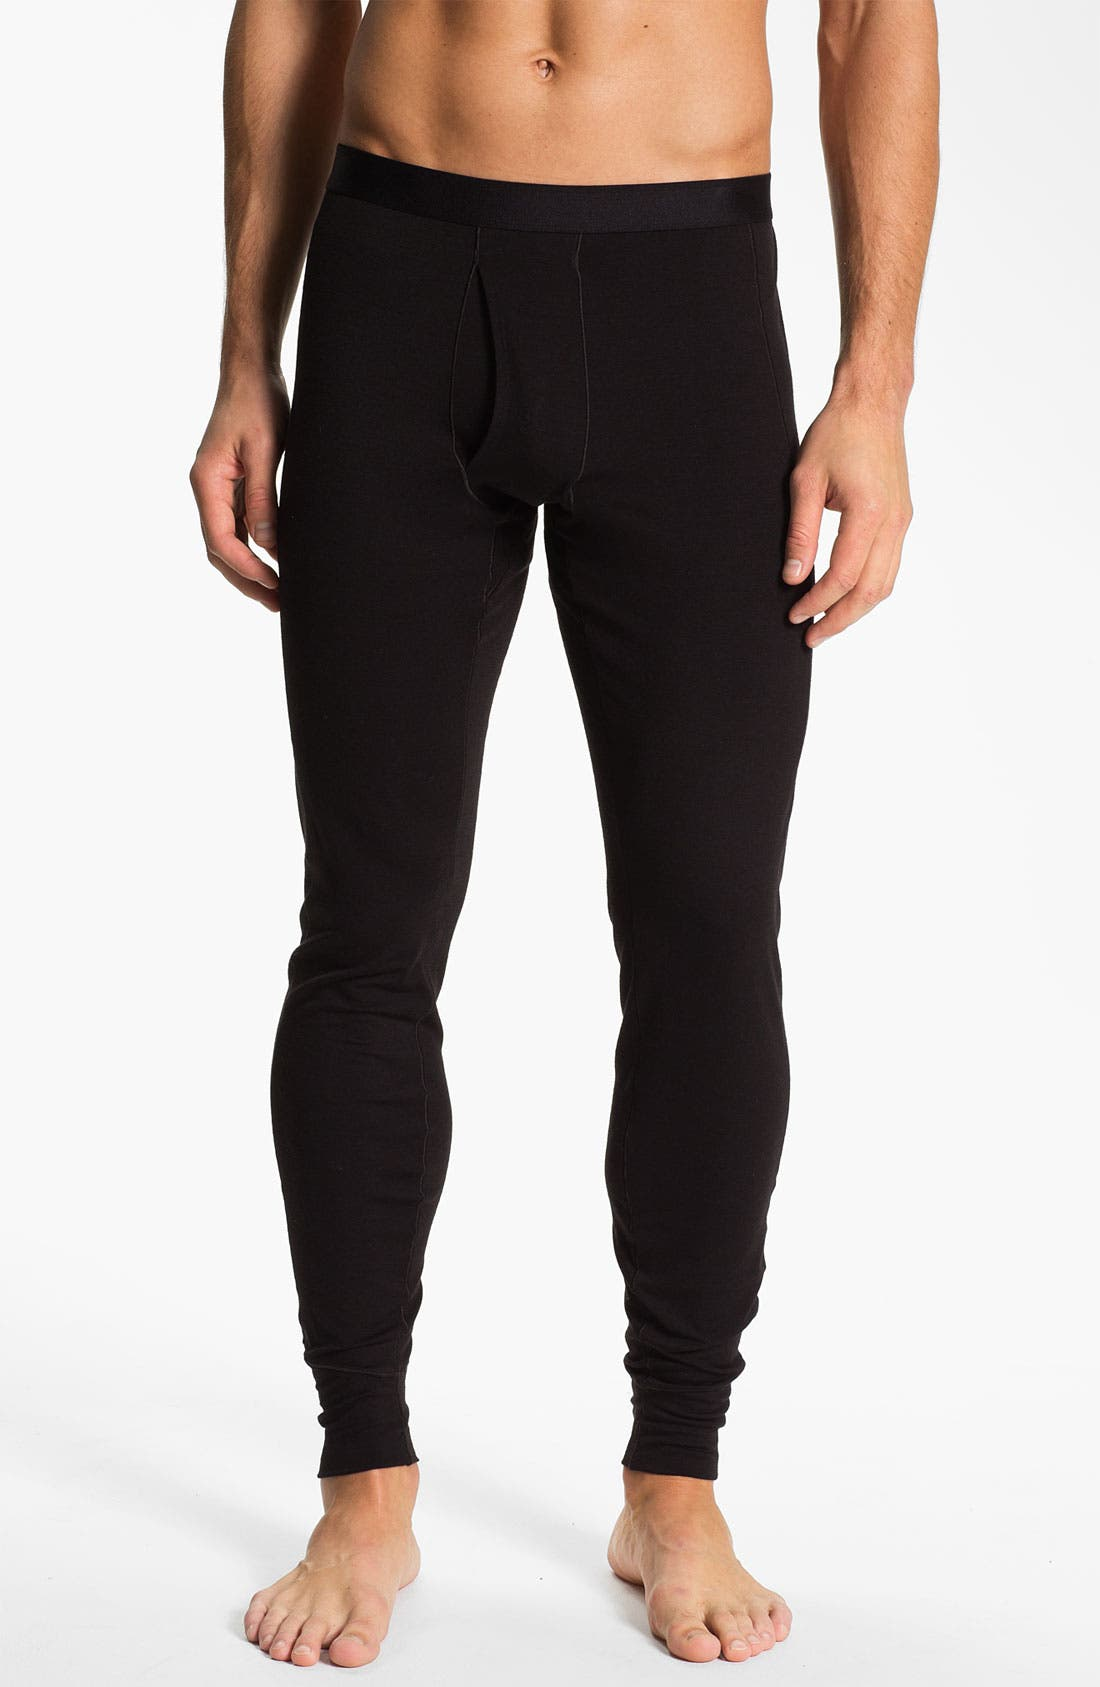 Alternate Image 1 Selected - Patagonia 'Merino® 2' Base Layer Pants (Online Only)